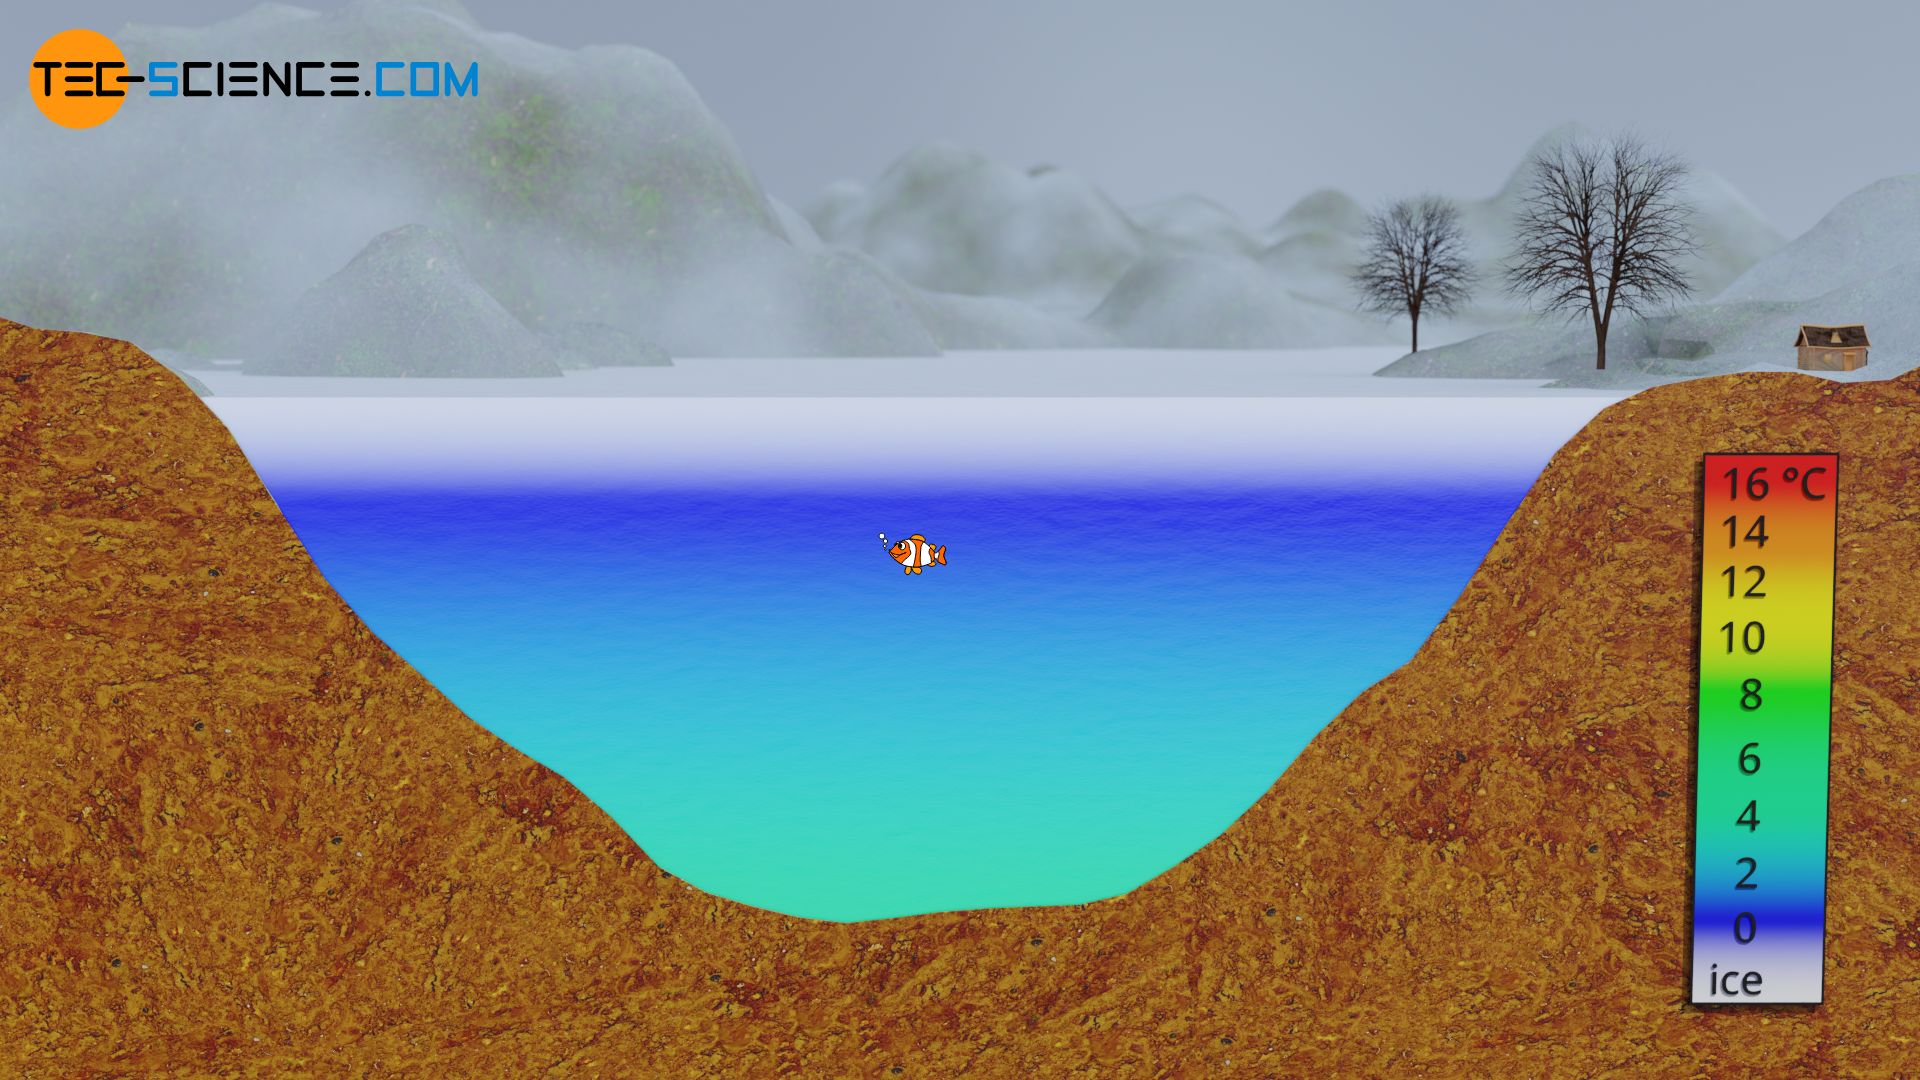 Thermal stratification of a lake in winter